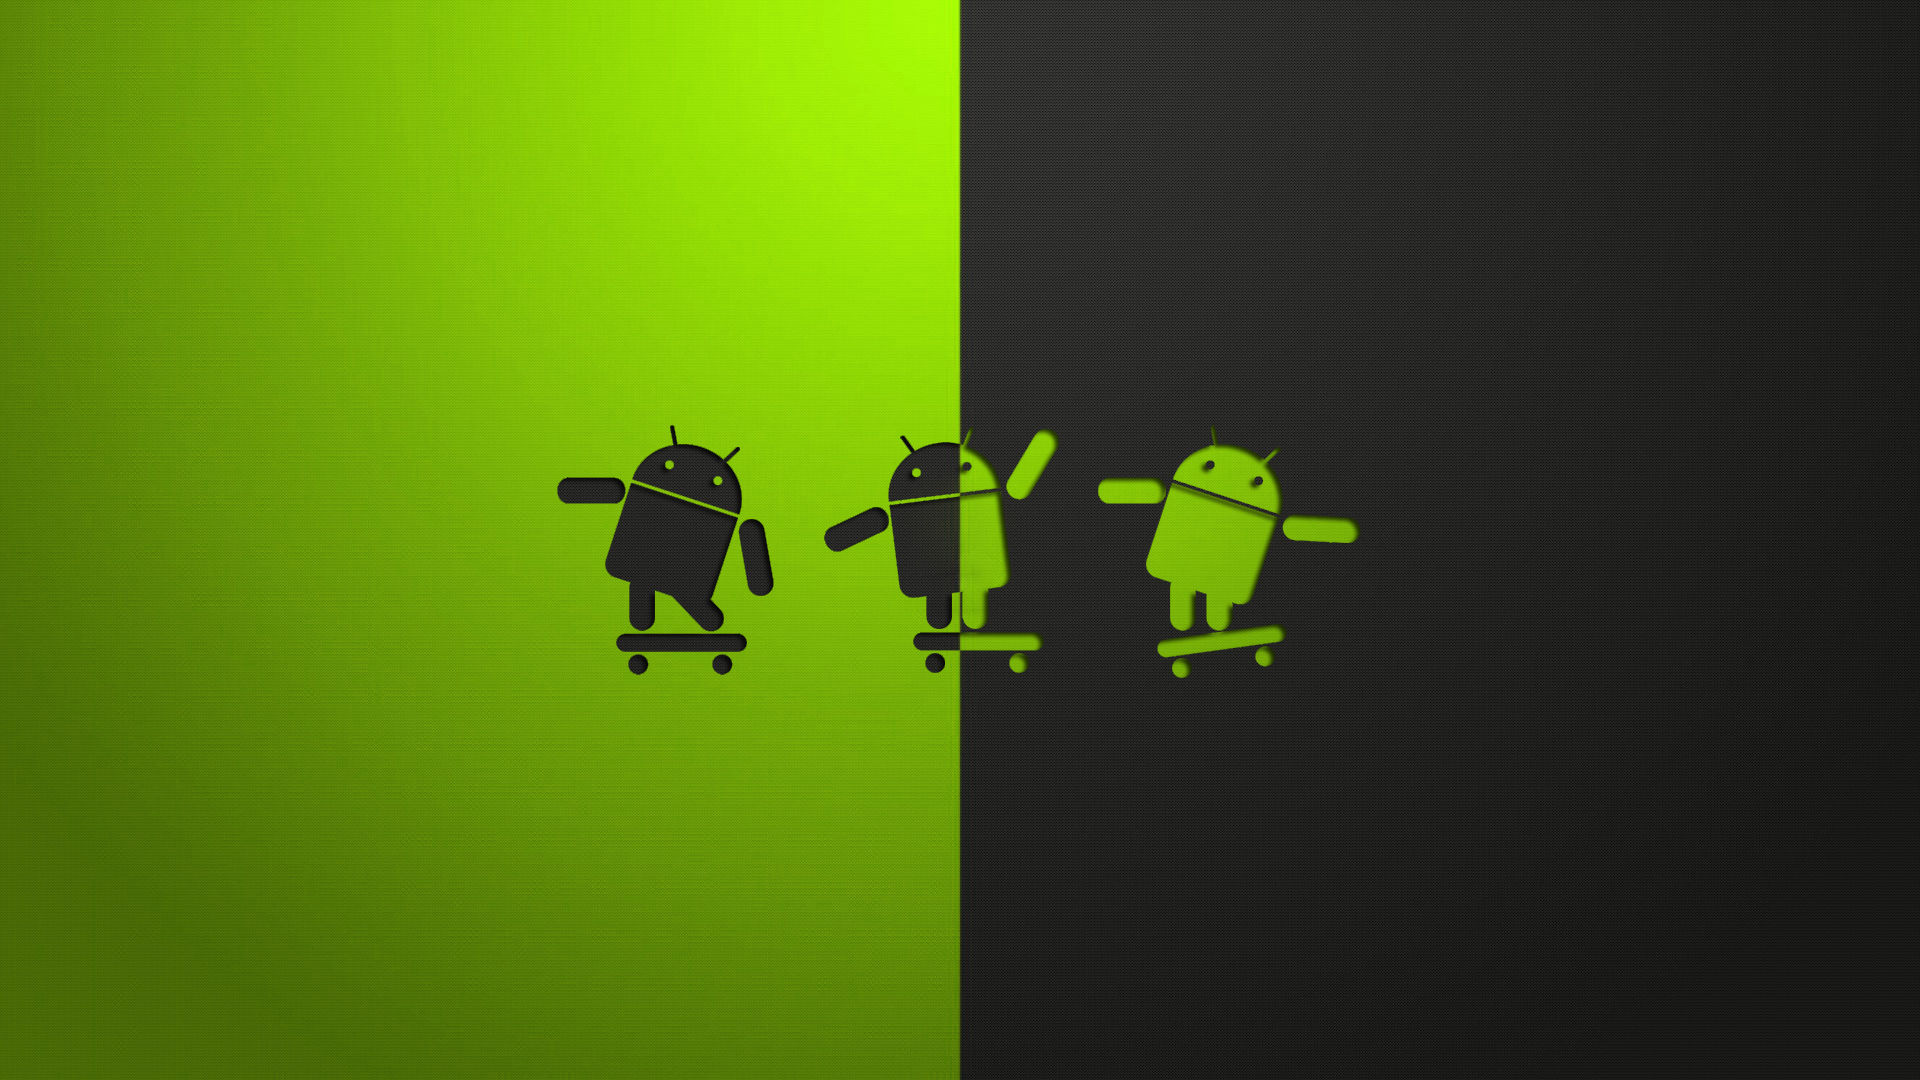 Wallpapers And Backgrounds For Android